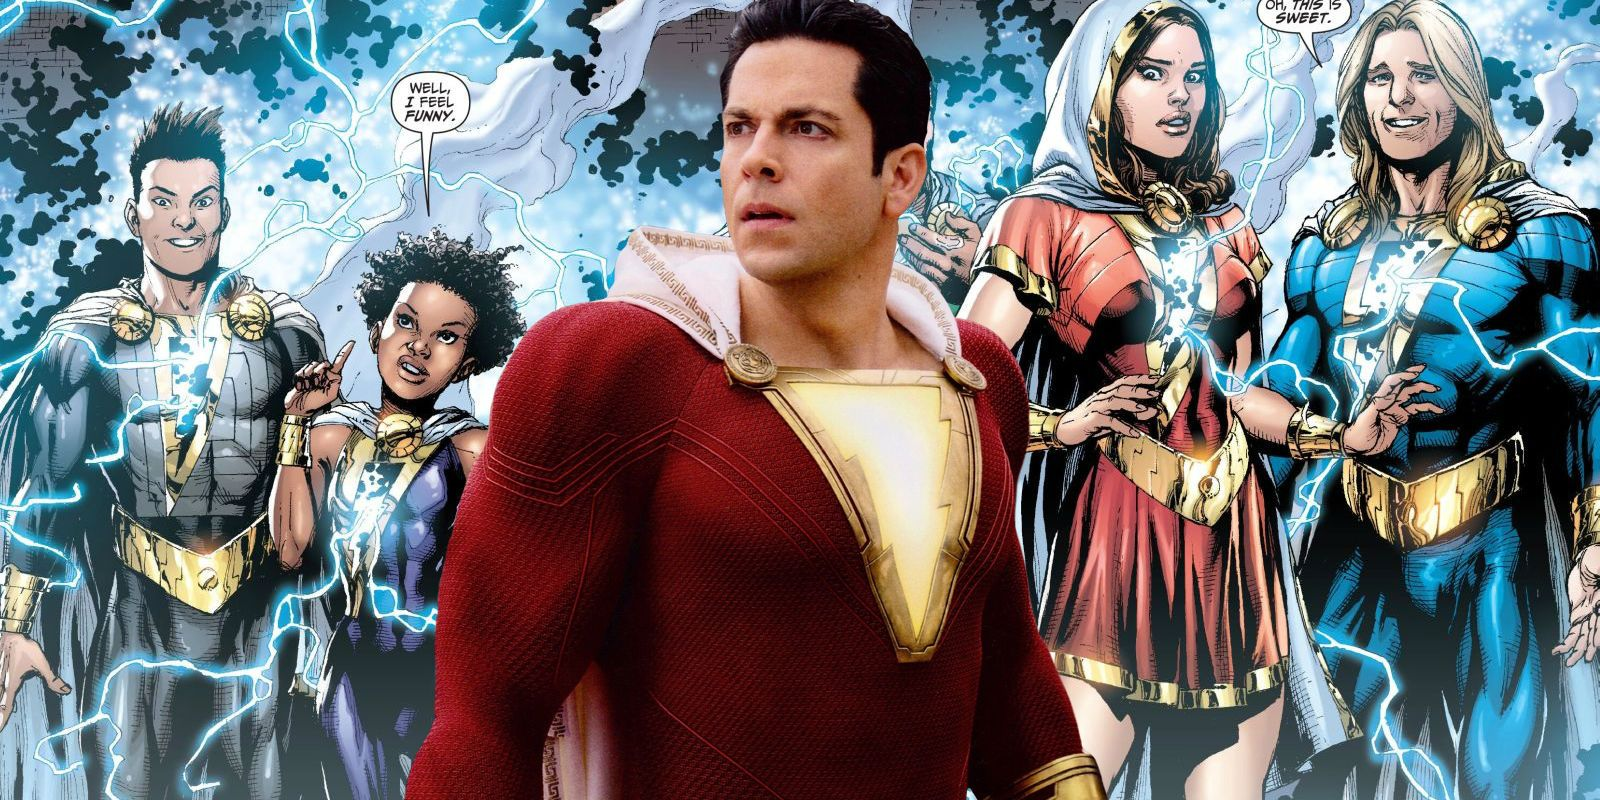 Shazam Family Explained: Who Plays The Adults & What Are Their Powers?